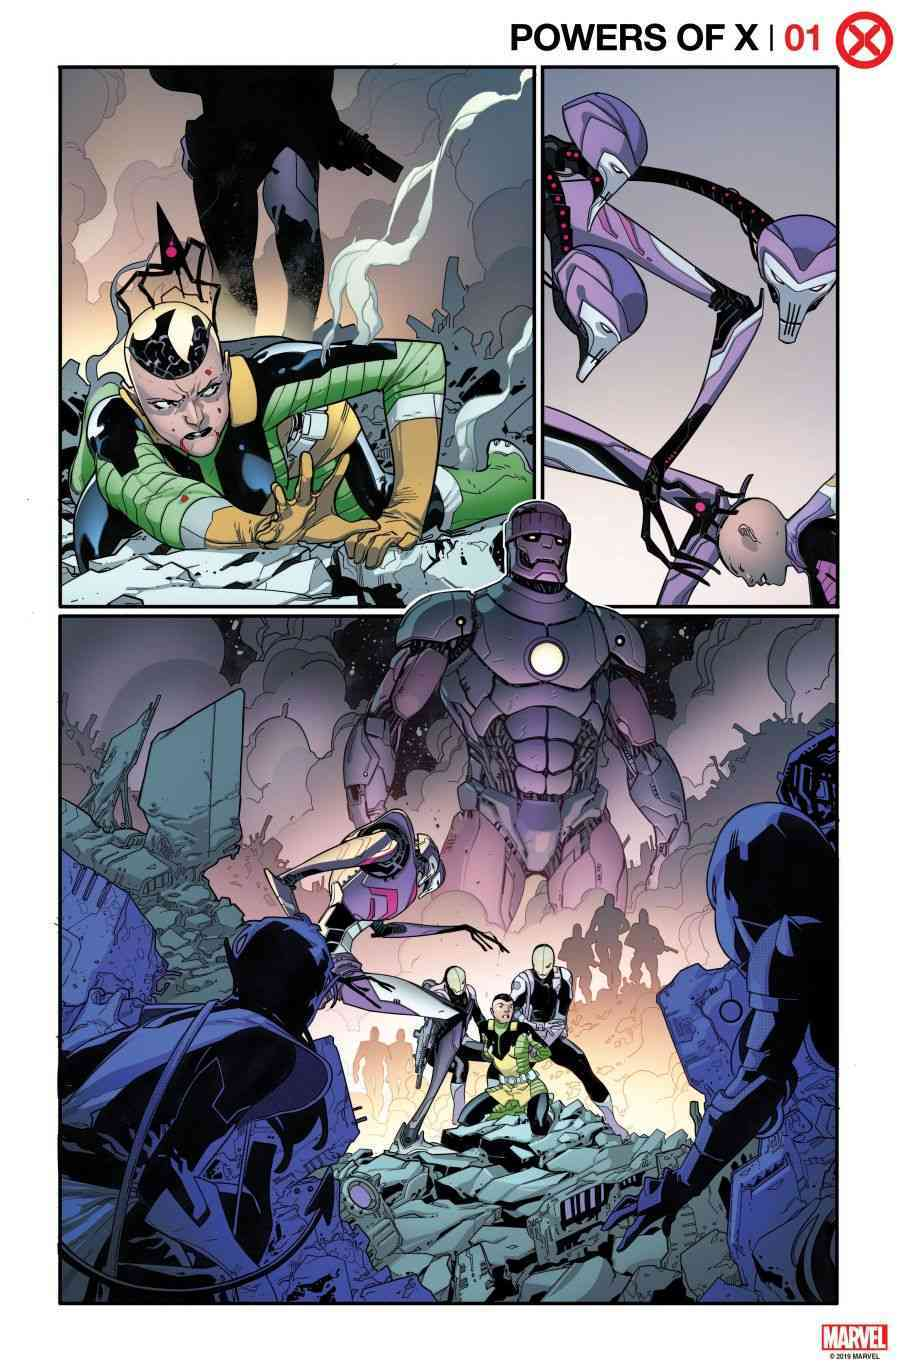 Os X-Men de Jonathan Hickman - Powers of X #1 - Arte interna 1 - Blog Farofeiros